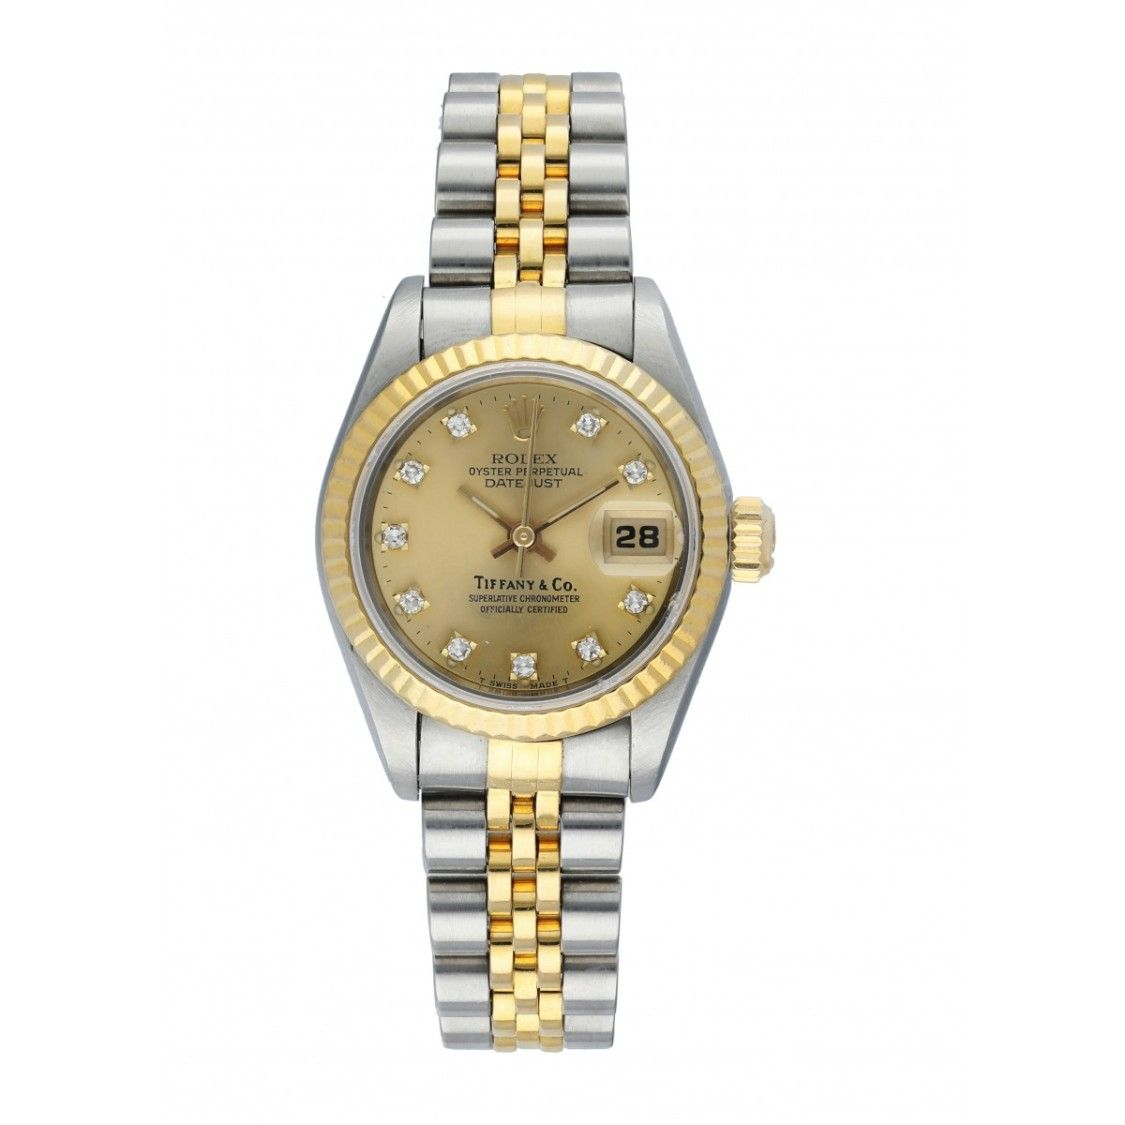 Rolex Datejust 69173 Tiffany Dial Ladies Watch